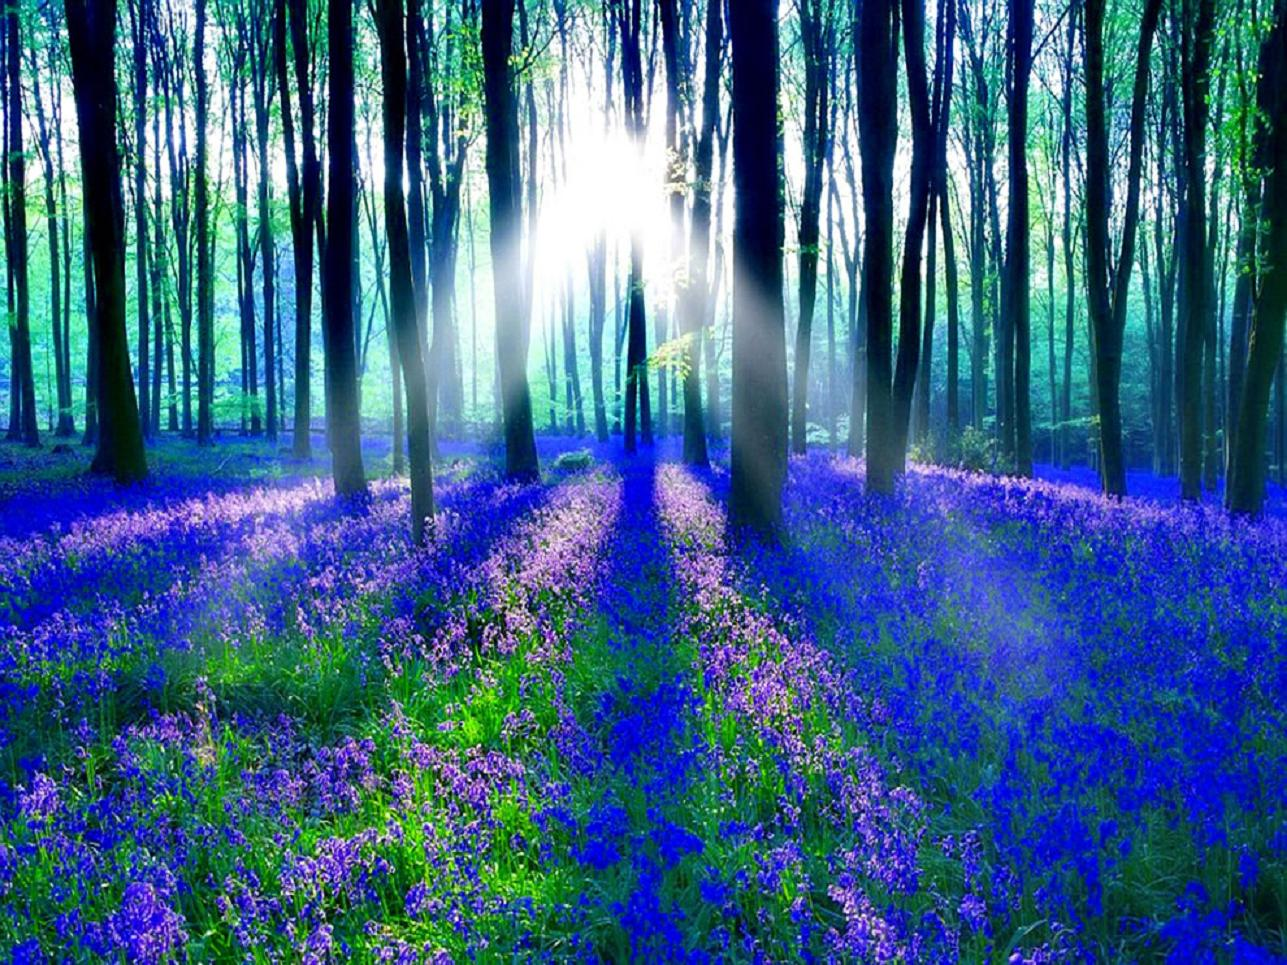 Bluebells in wooded area. Becomes a unicorn running in a field of goldenrod when the word Unicorn is clicked